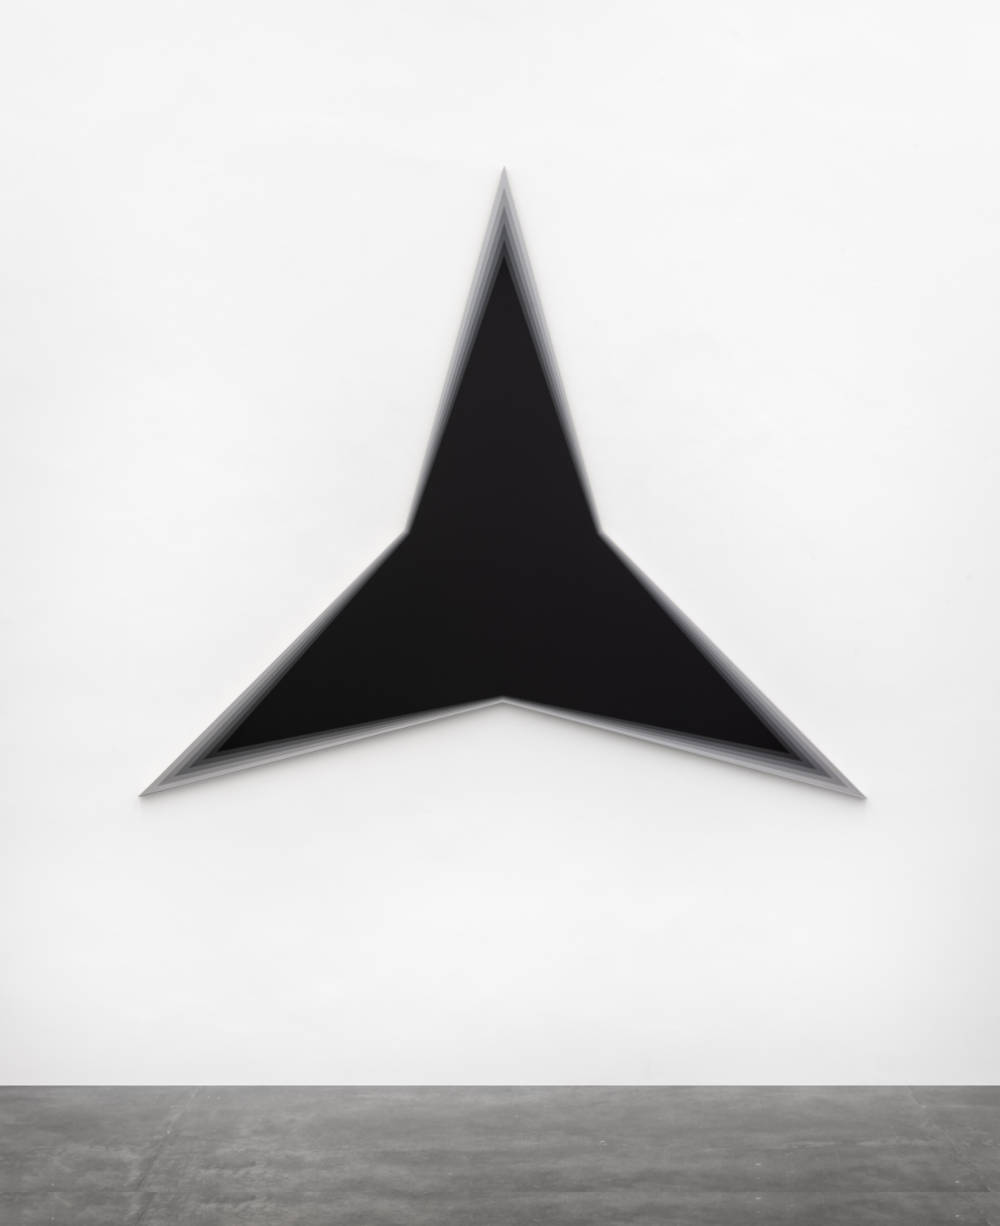 Philippe Decrauzat, Black Should Bleed to Edge (Black), 2012. Acrylic paint on canvas 191 x 220 x 3,5 cm 75.2 x 86.6 x 1.4 in. Photo © Nei Toledo. Courtesy of the artist and Galeria Nara Roesler